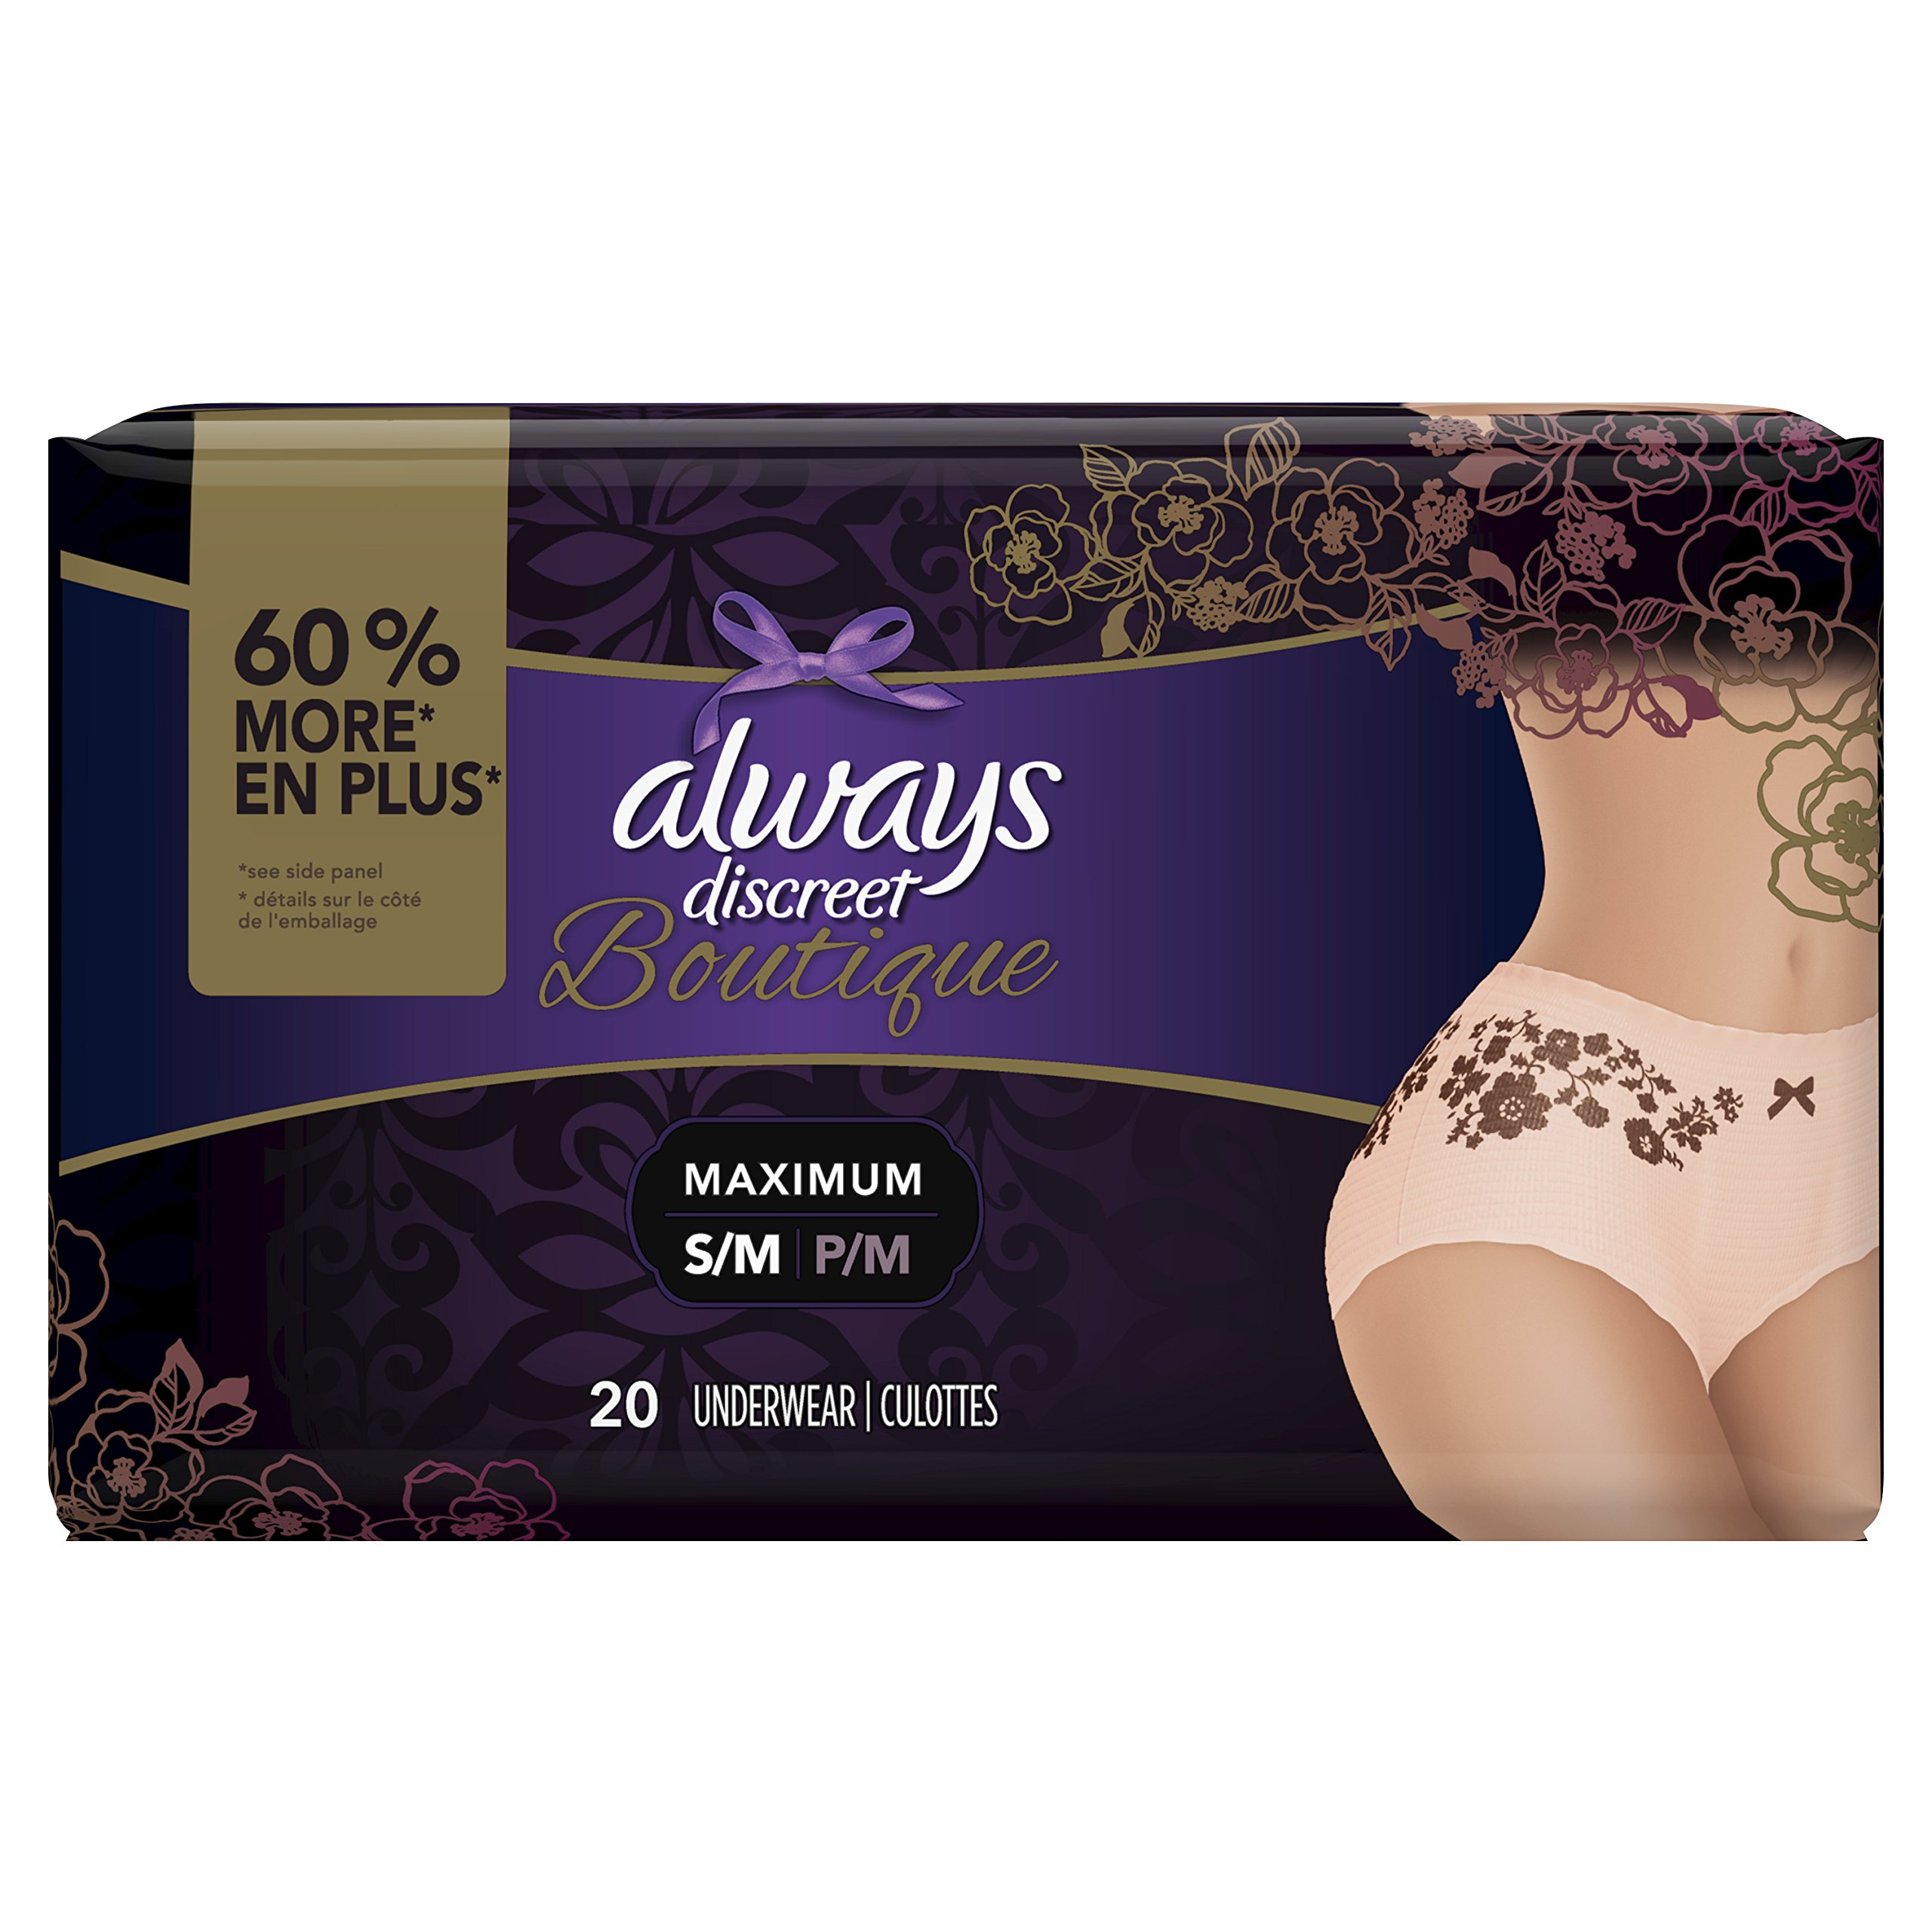 Always Discreet Boutique Incontinence & Postpartum Underwear for Women, Disposable, Maximum Protection, Peach, Small/Medium, 20 Count (Packaging May Vary) by Always Discreet